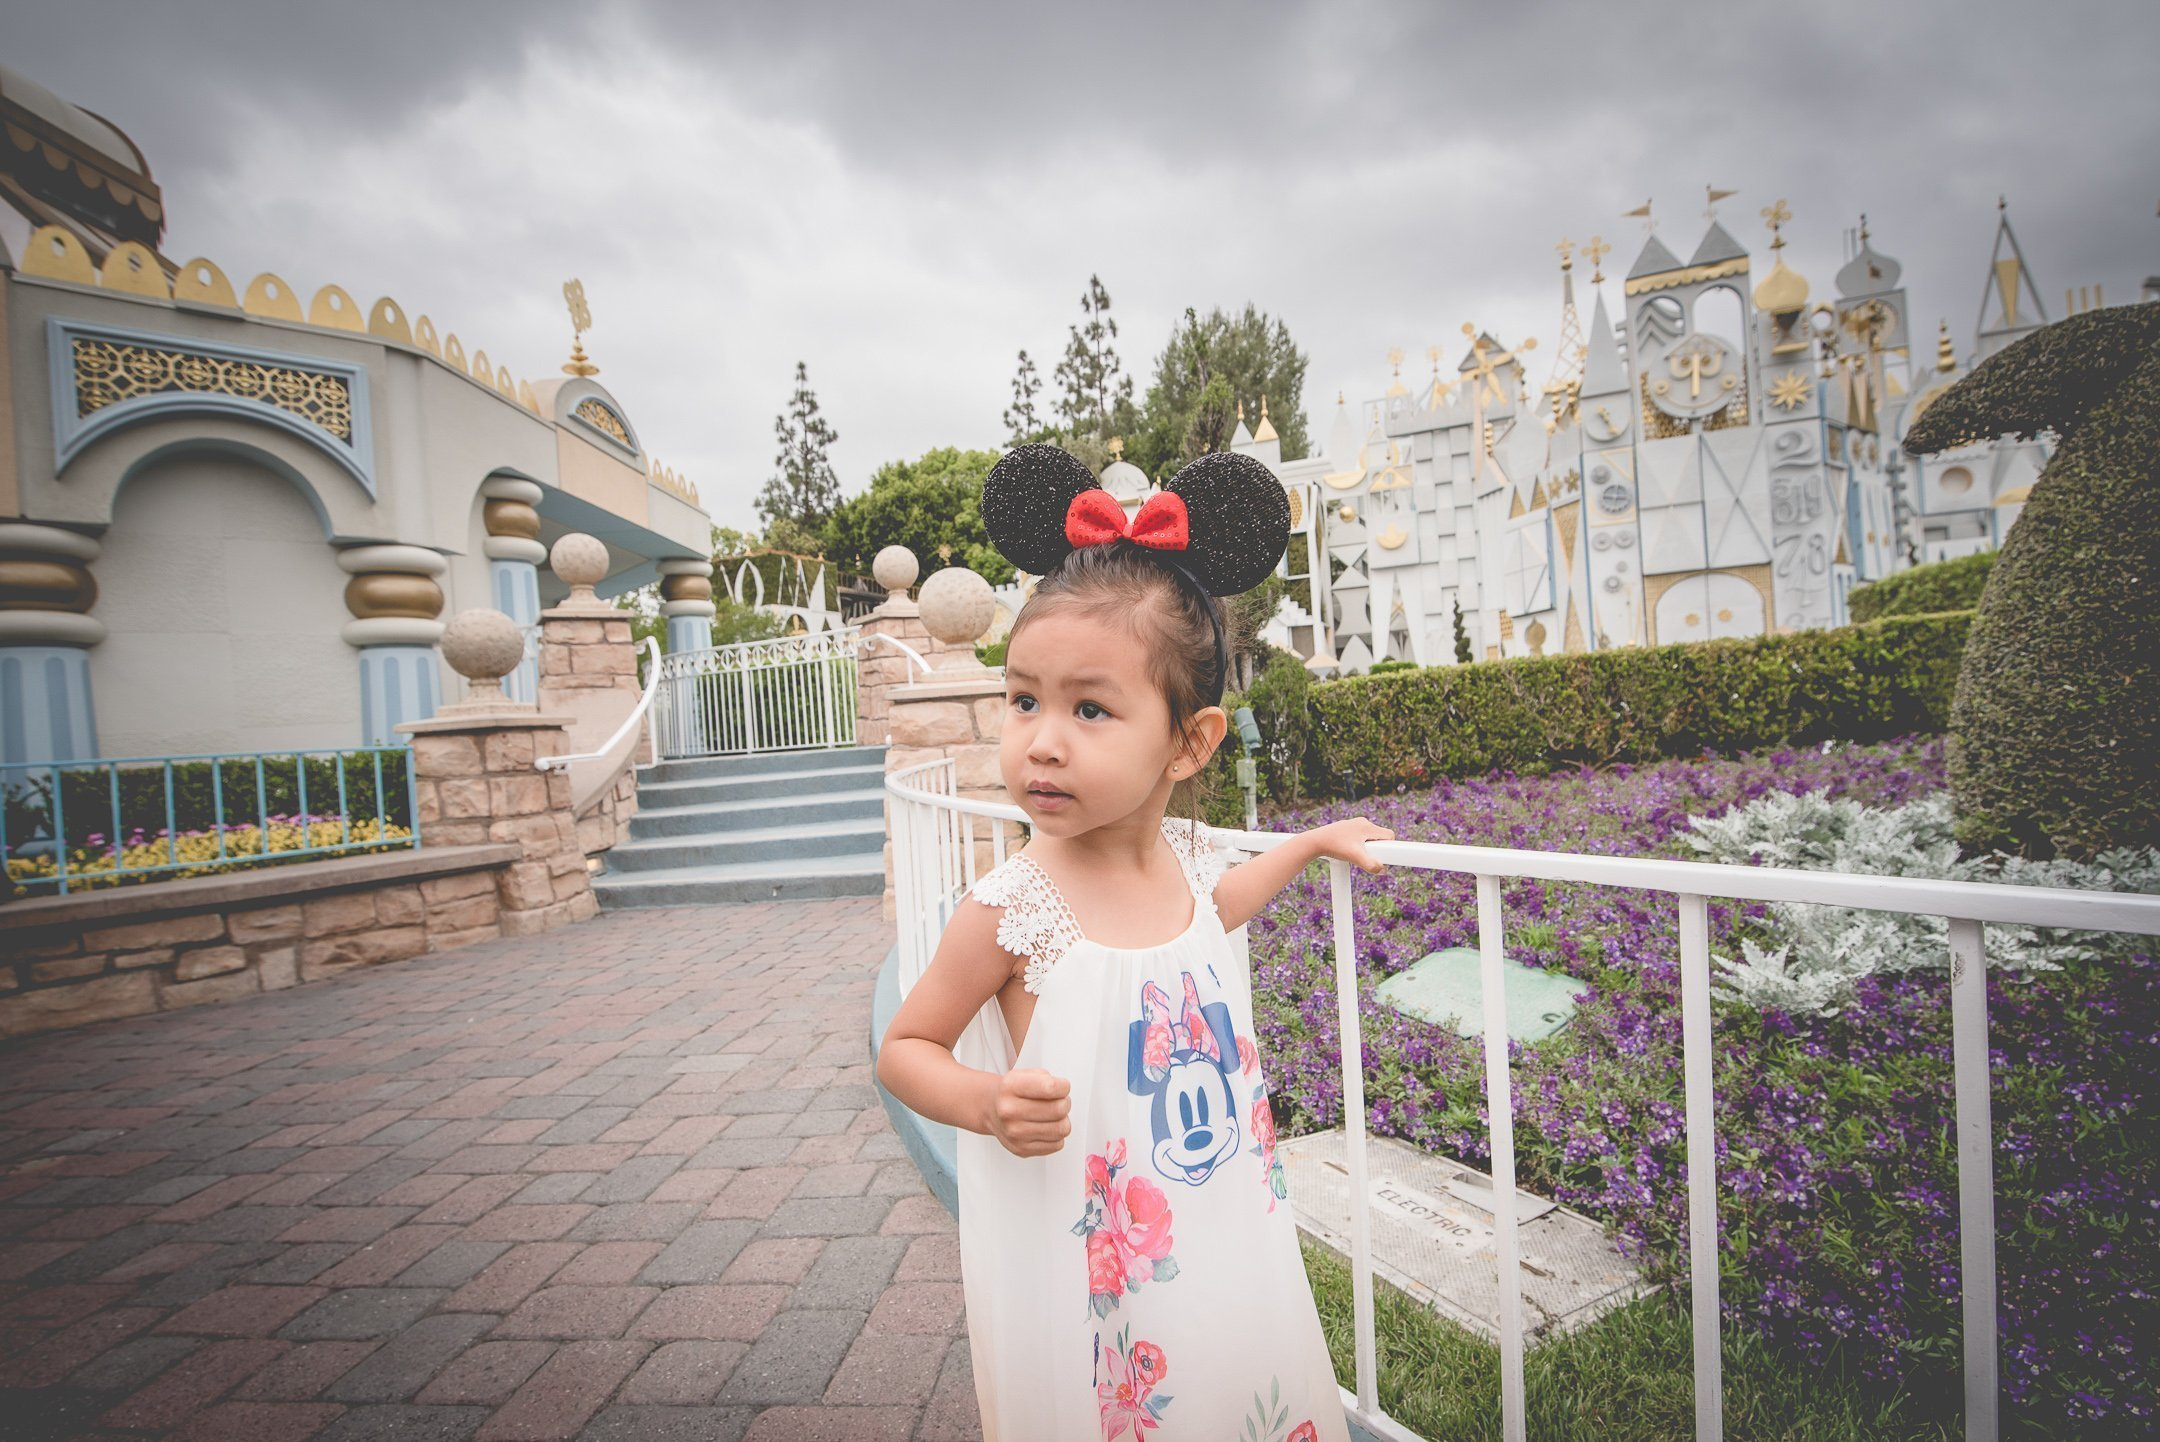 Little girl with Mickey ears by the It's a small world ride in Disneyland, CA